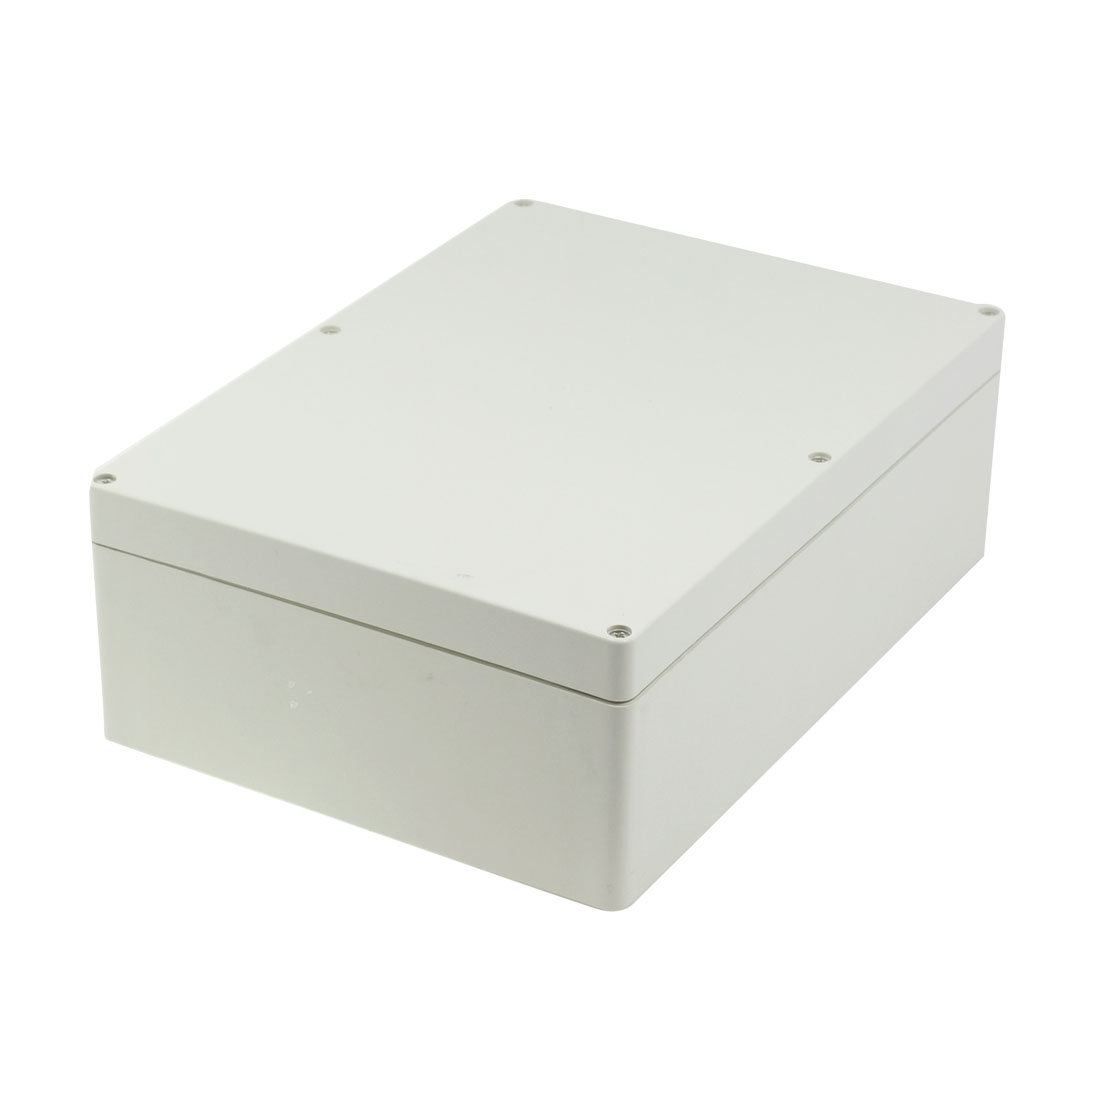 290mm-x-210mm-x-100mm-Waterproof-Plastic-Enclosure-Case-DIY-Junction-Box